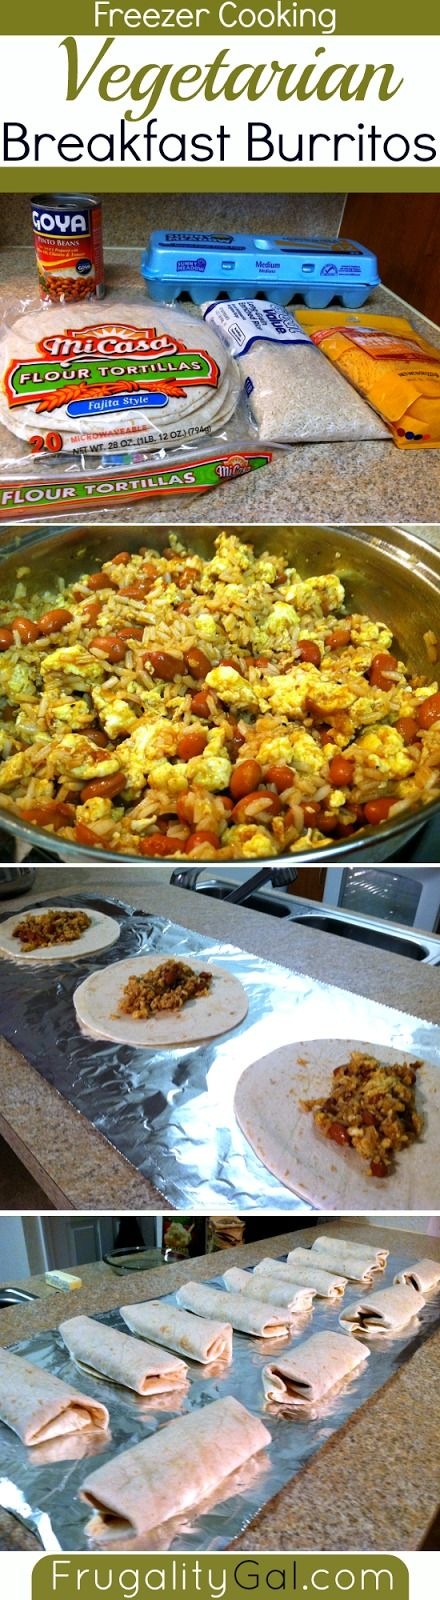 Vegetarian Breakfast Burritos for the Freezer. #freezercooking #oamc